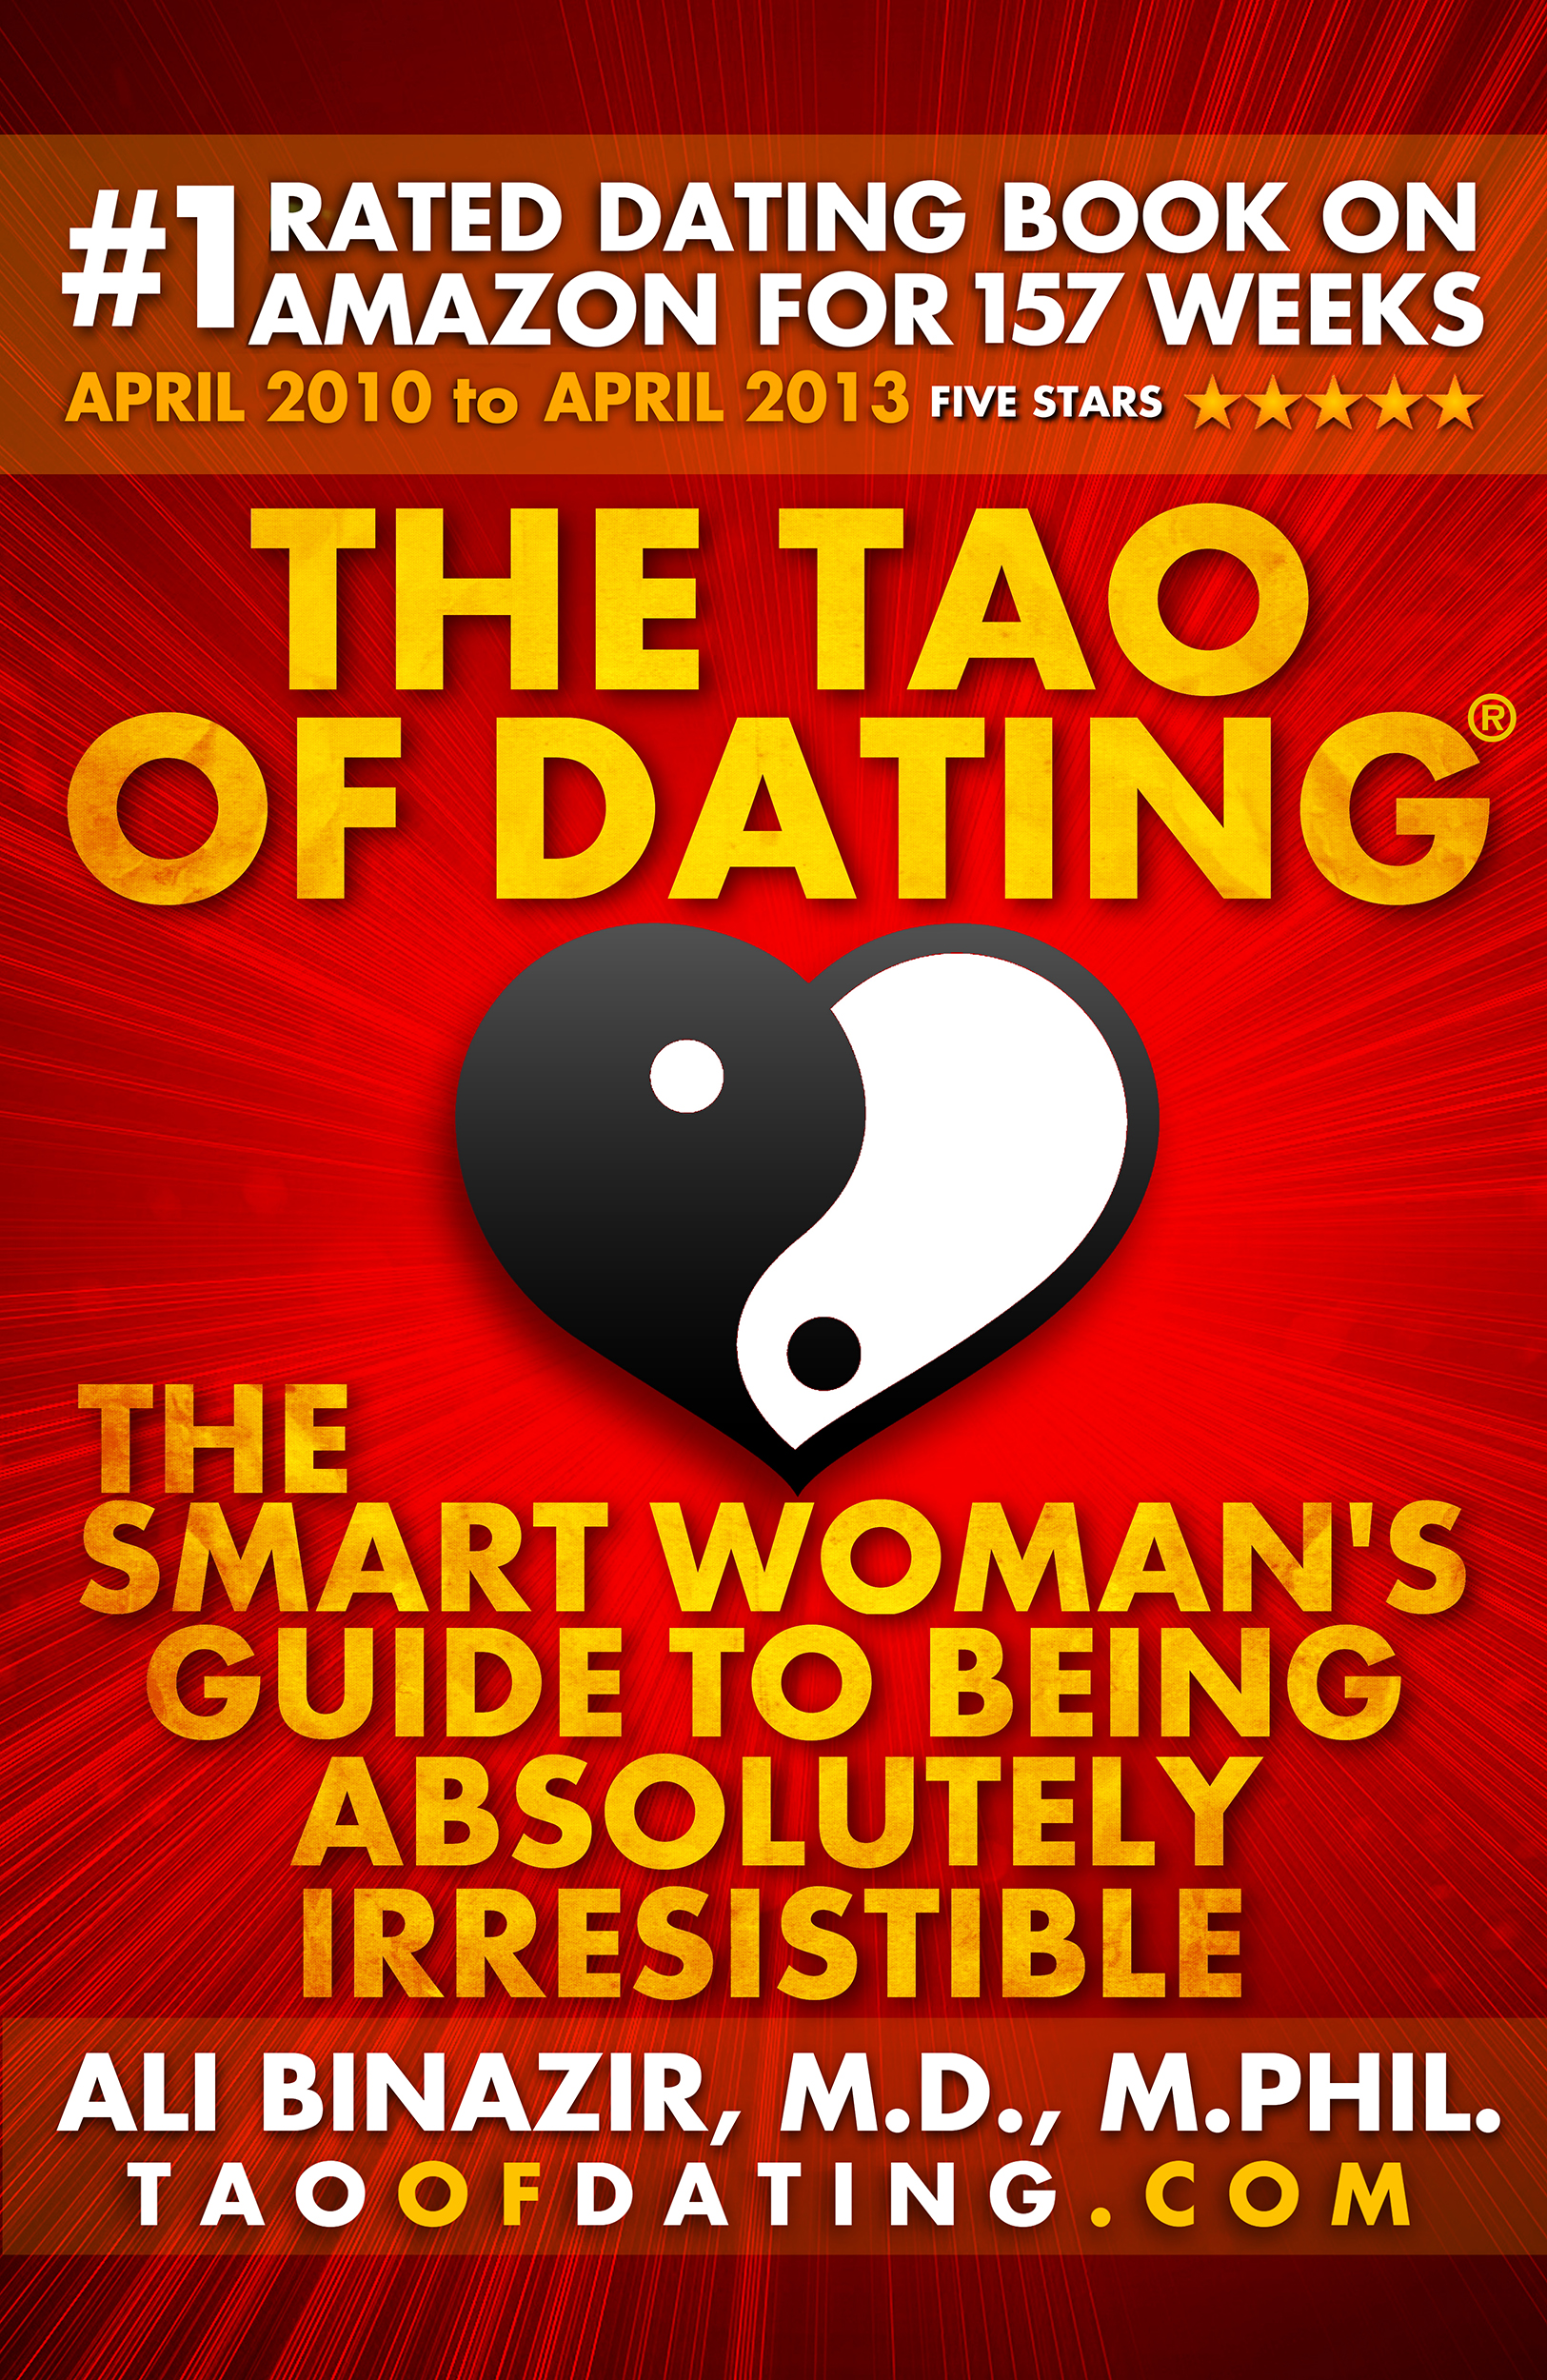 Tao of dating blog